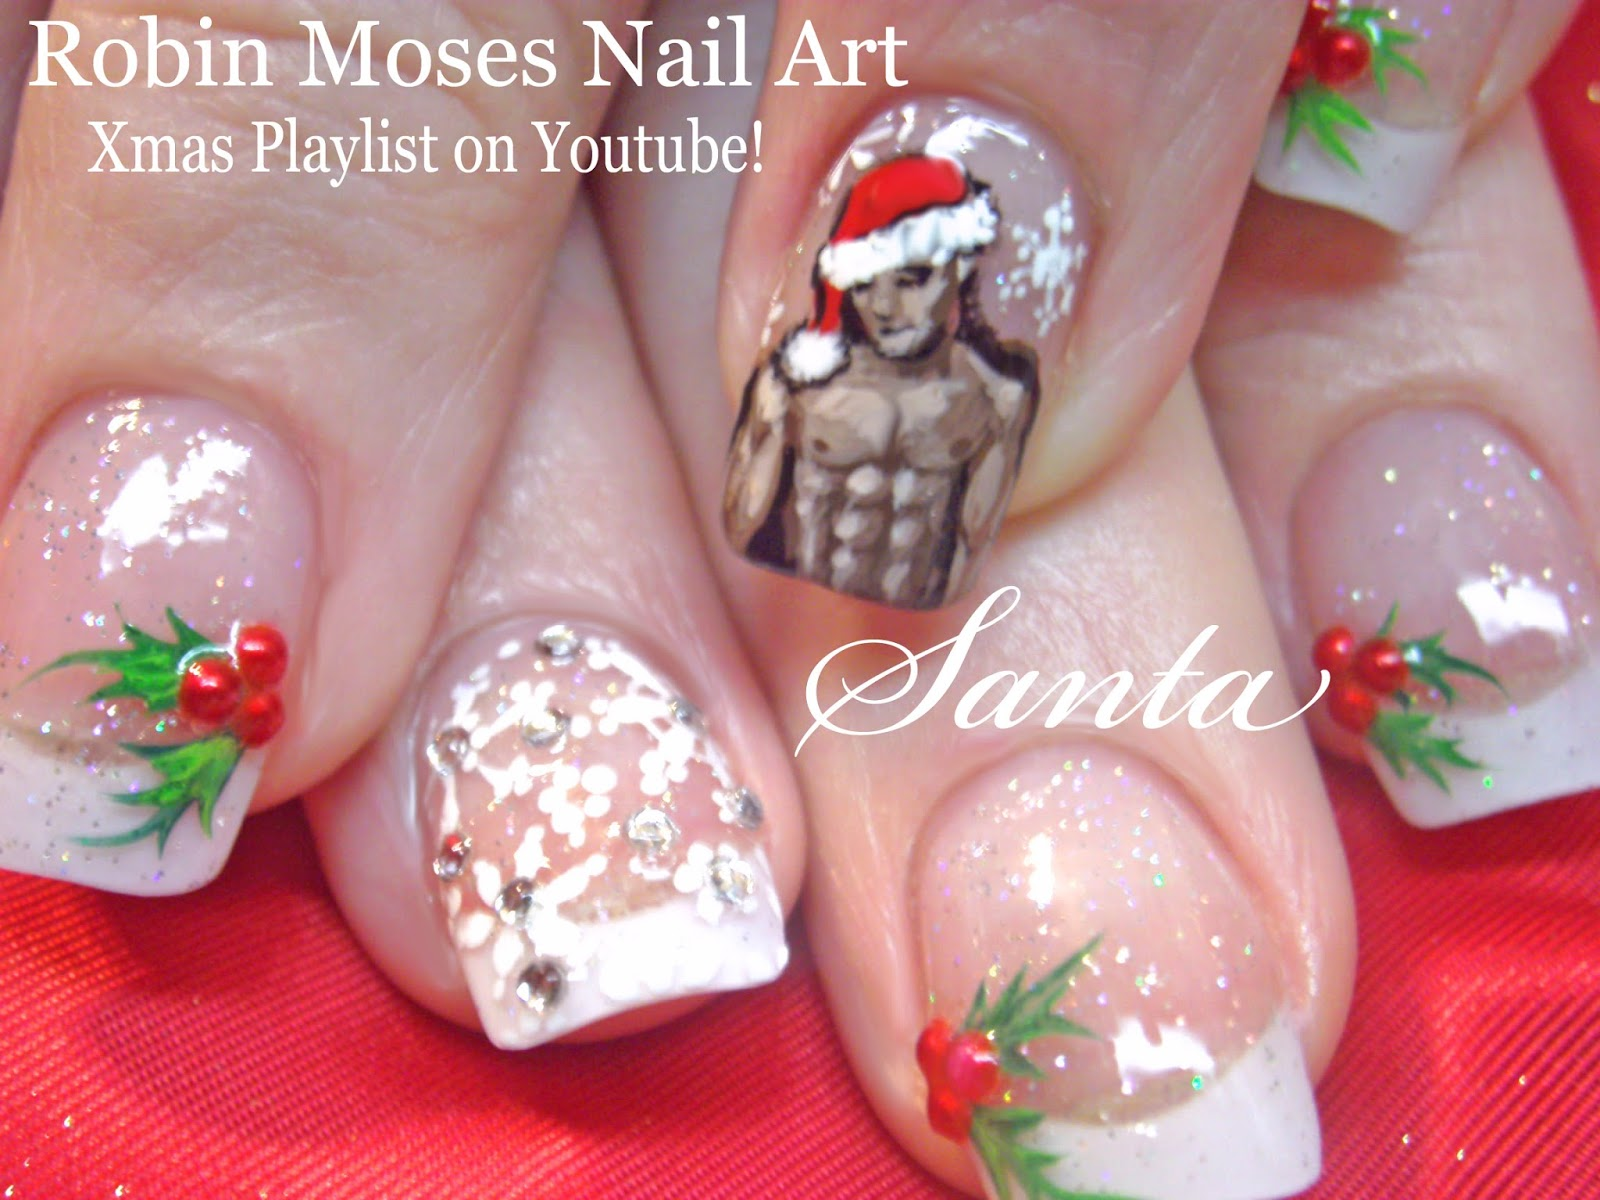 Robin Moses Nail Art: Christmas Nails! 2 Fun New Designs ...